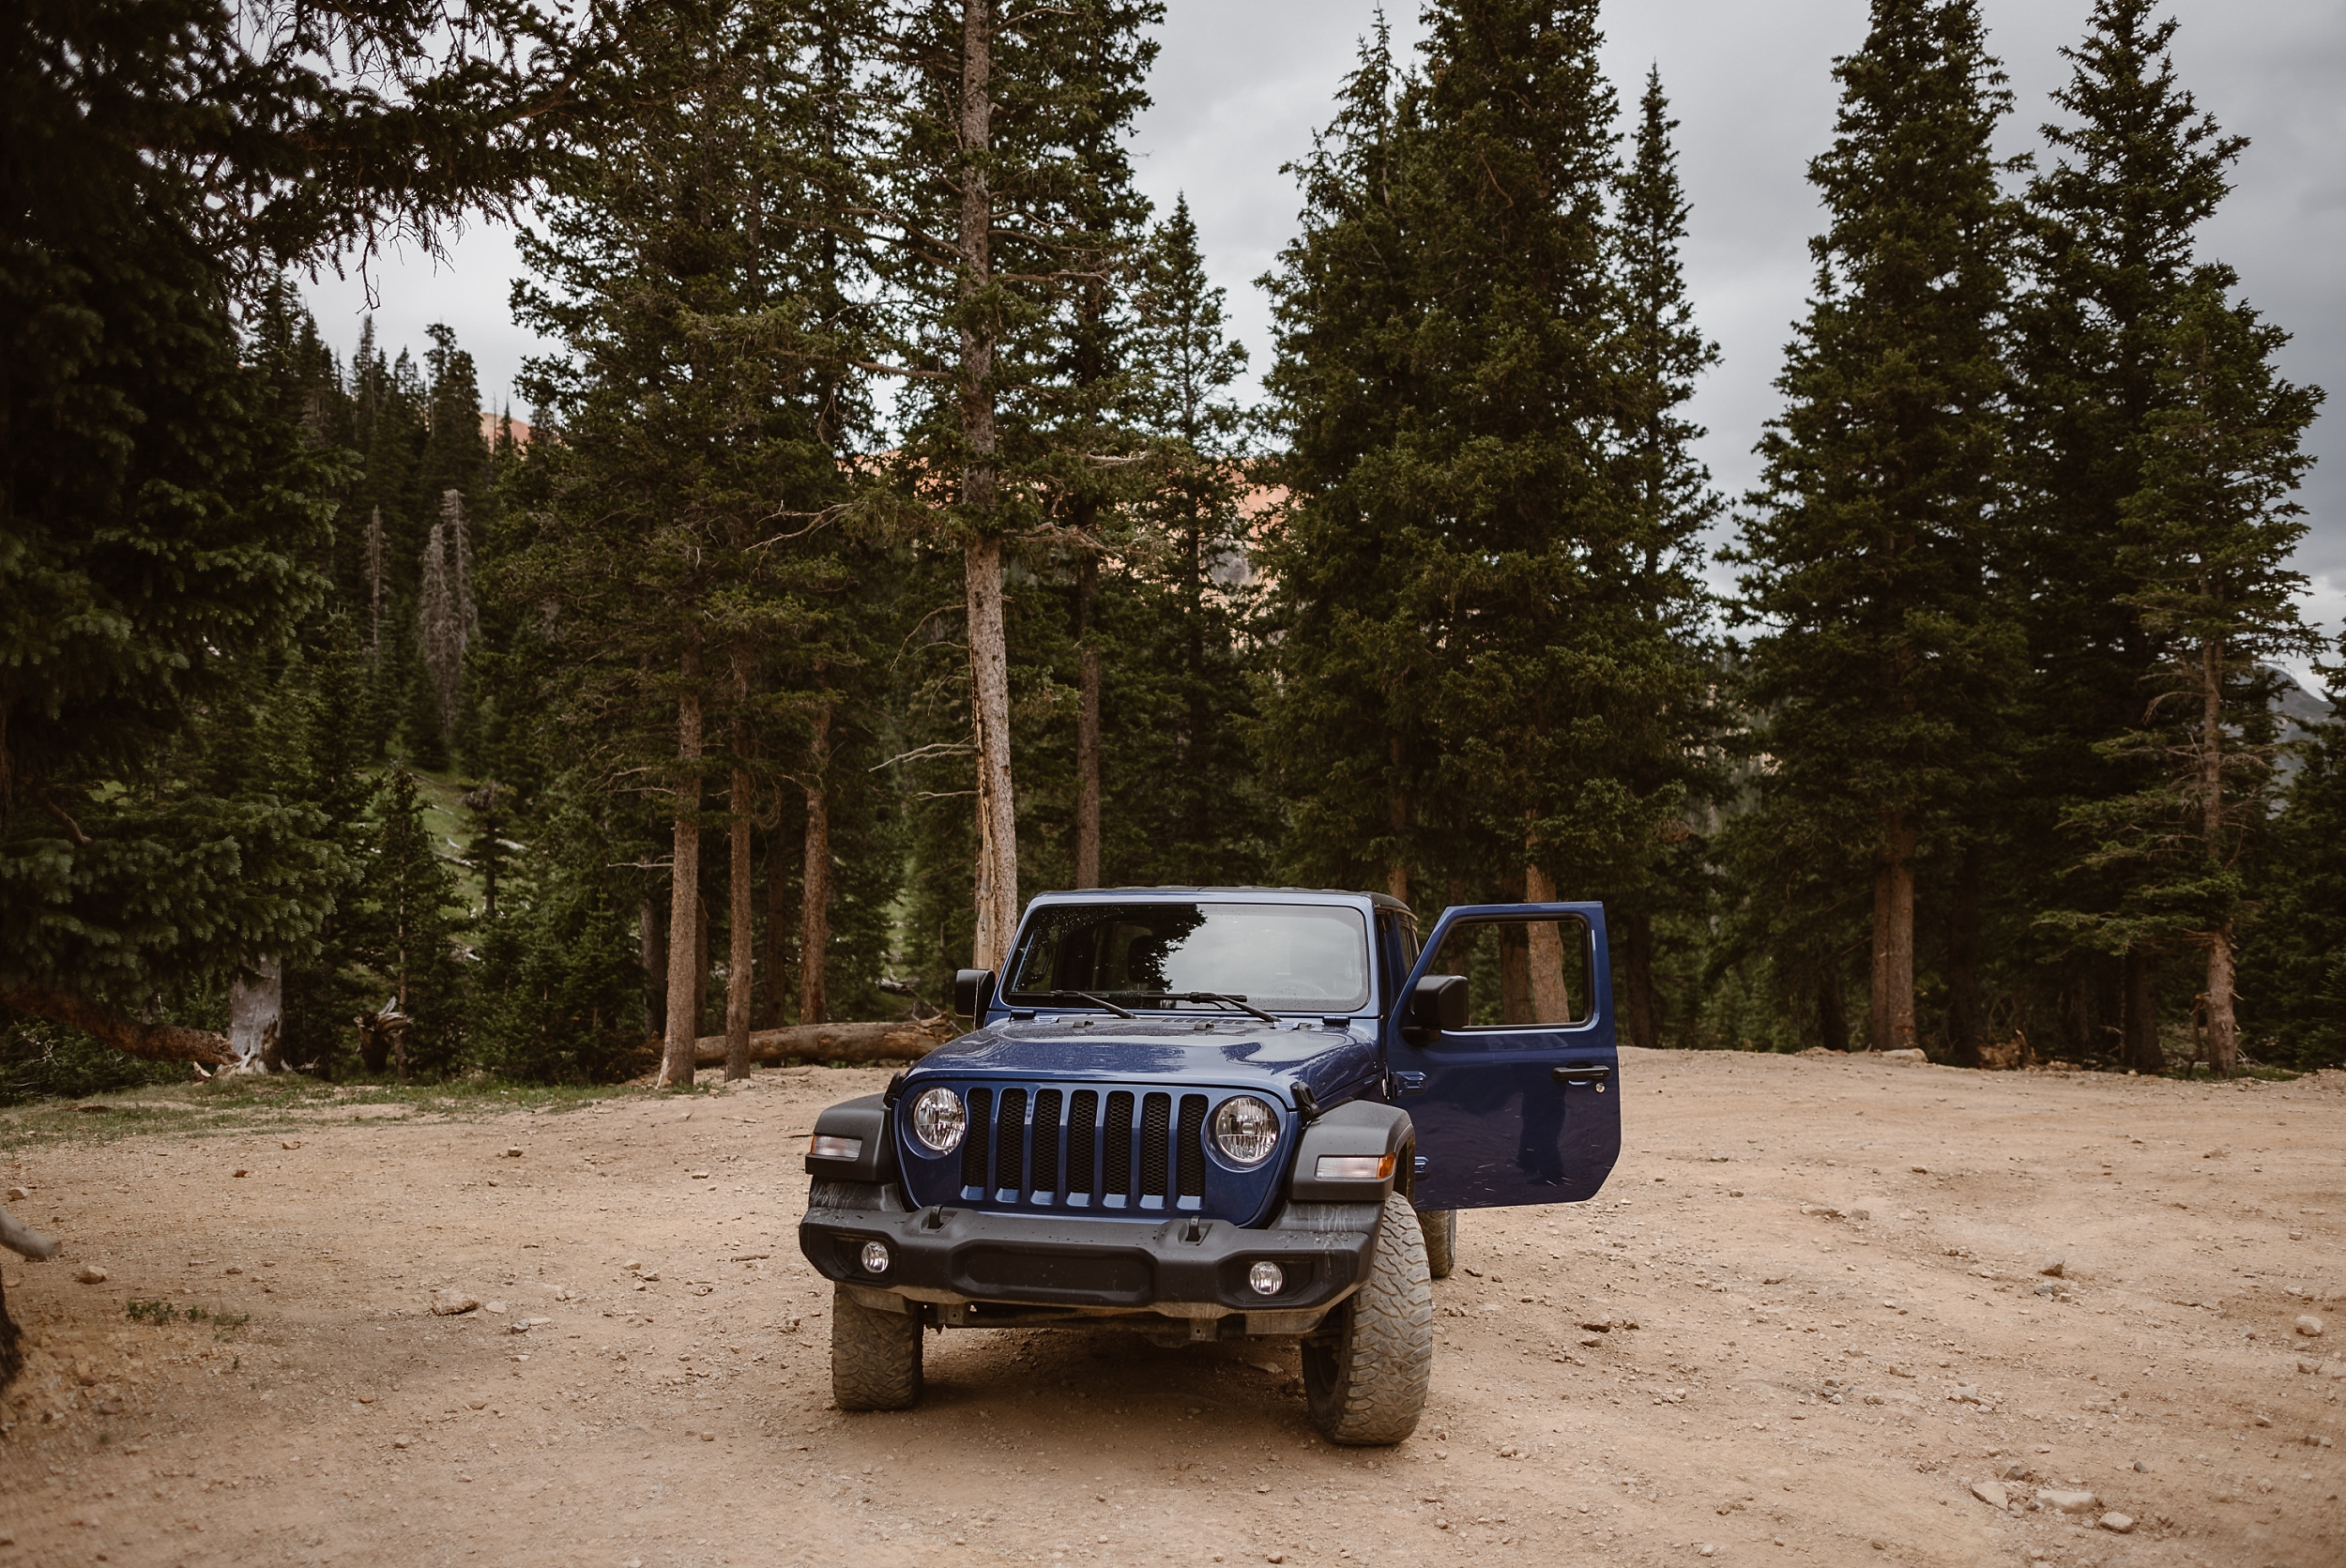 A navy blue Jeep stands parked on a dusty, Ouray, Colorado mountain road surrounded by tall, evergreen trees. This 4x4 off-road vehicle is Katie and Logan's Jeep wedding car, which will take them off-road for their Colorado mountain wedding — one of the best elopement ideas.